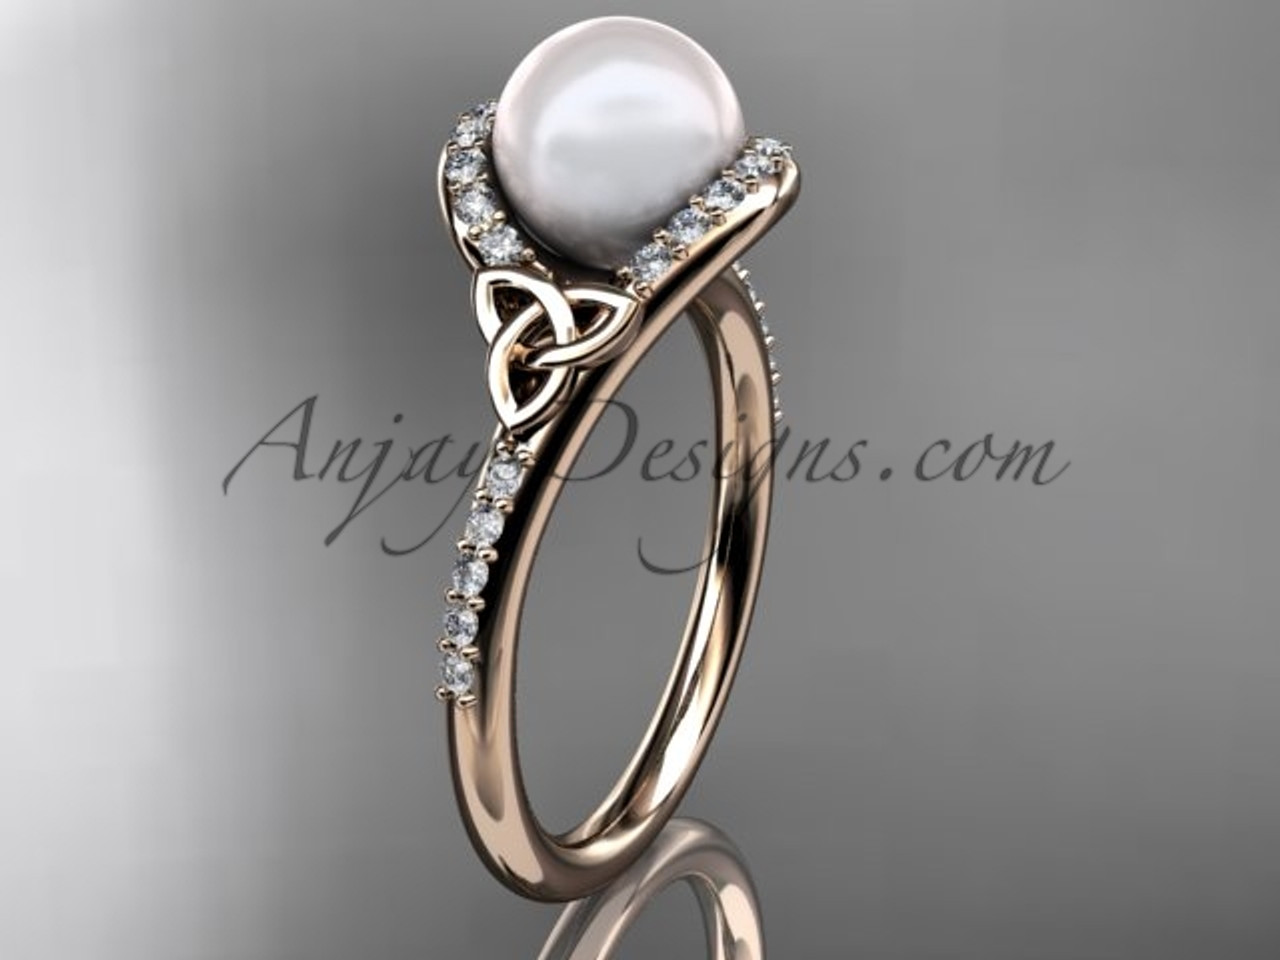 edmund rings t south and white mikimoto ring ahee gold in cut jewelers round pearl sea brilliant black diamond jewelry